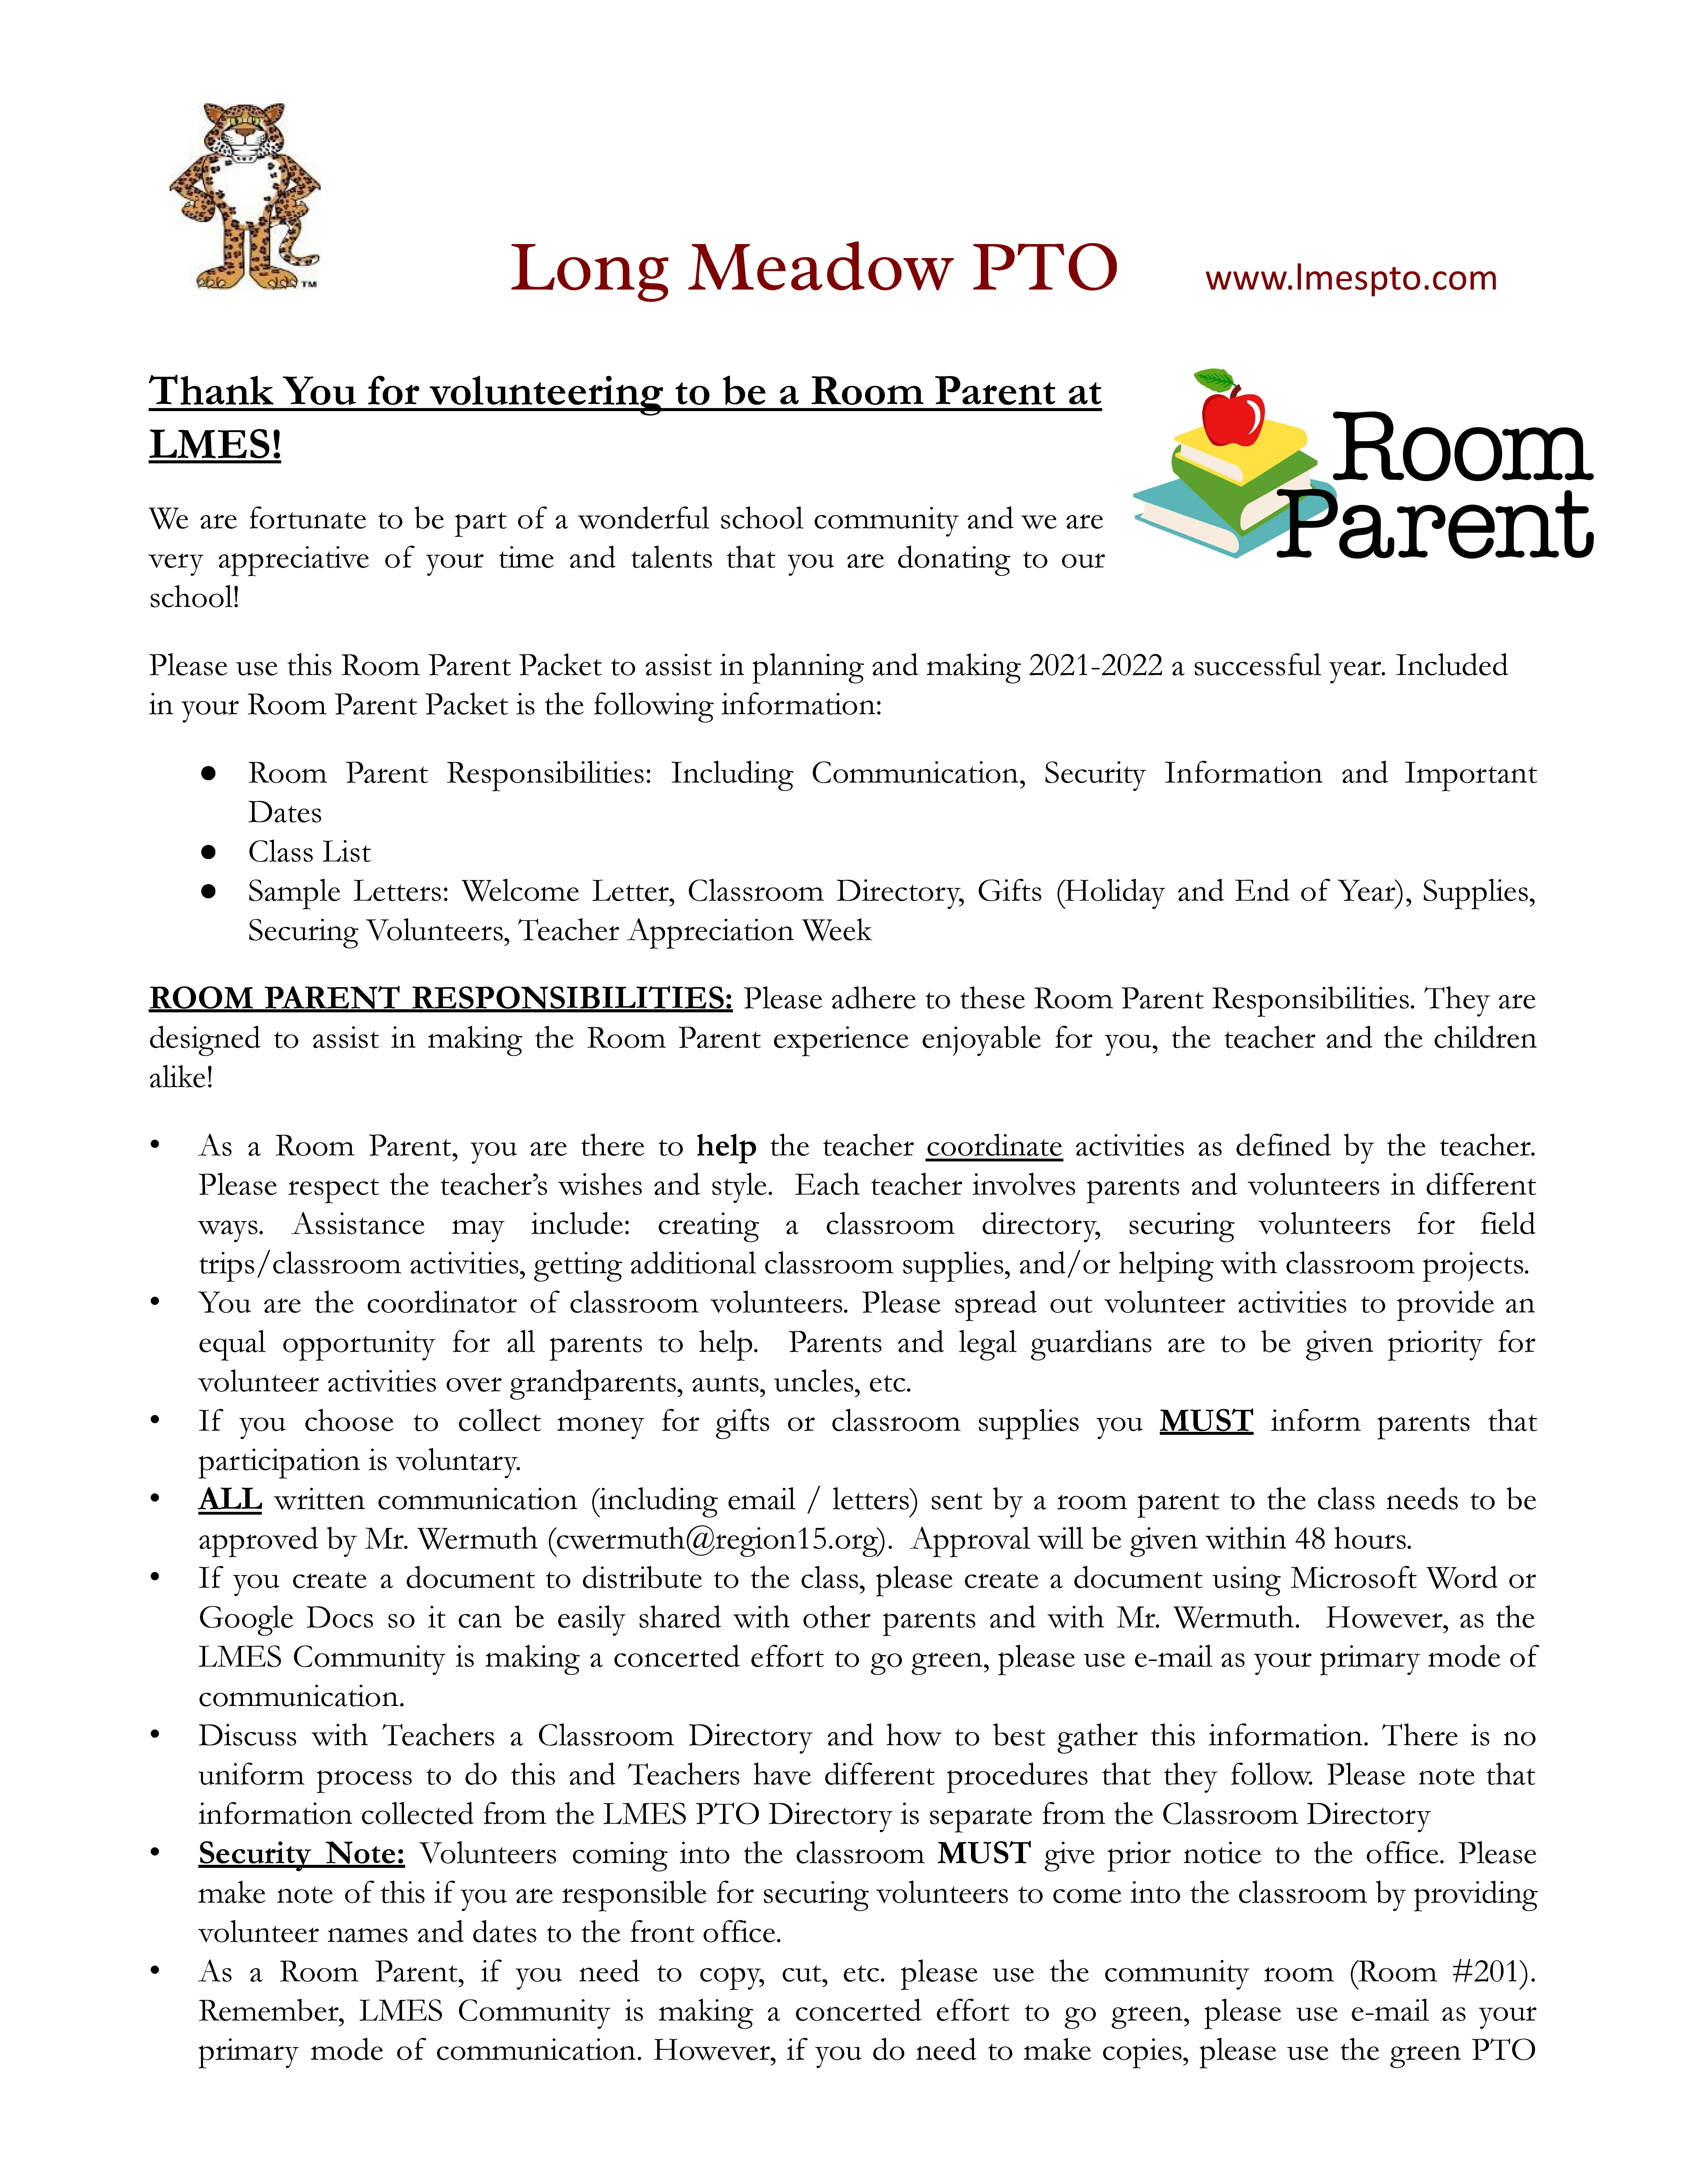 room parent welcome letter